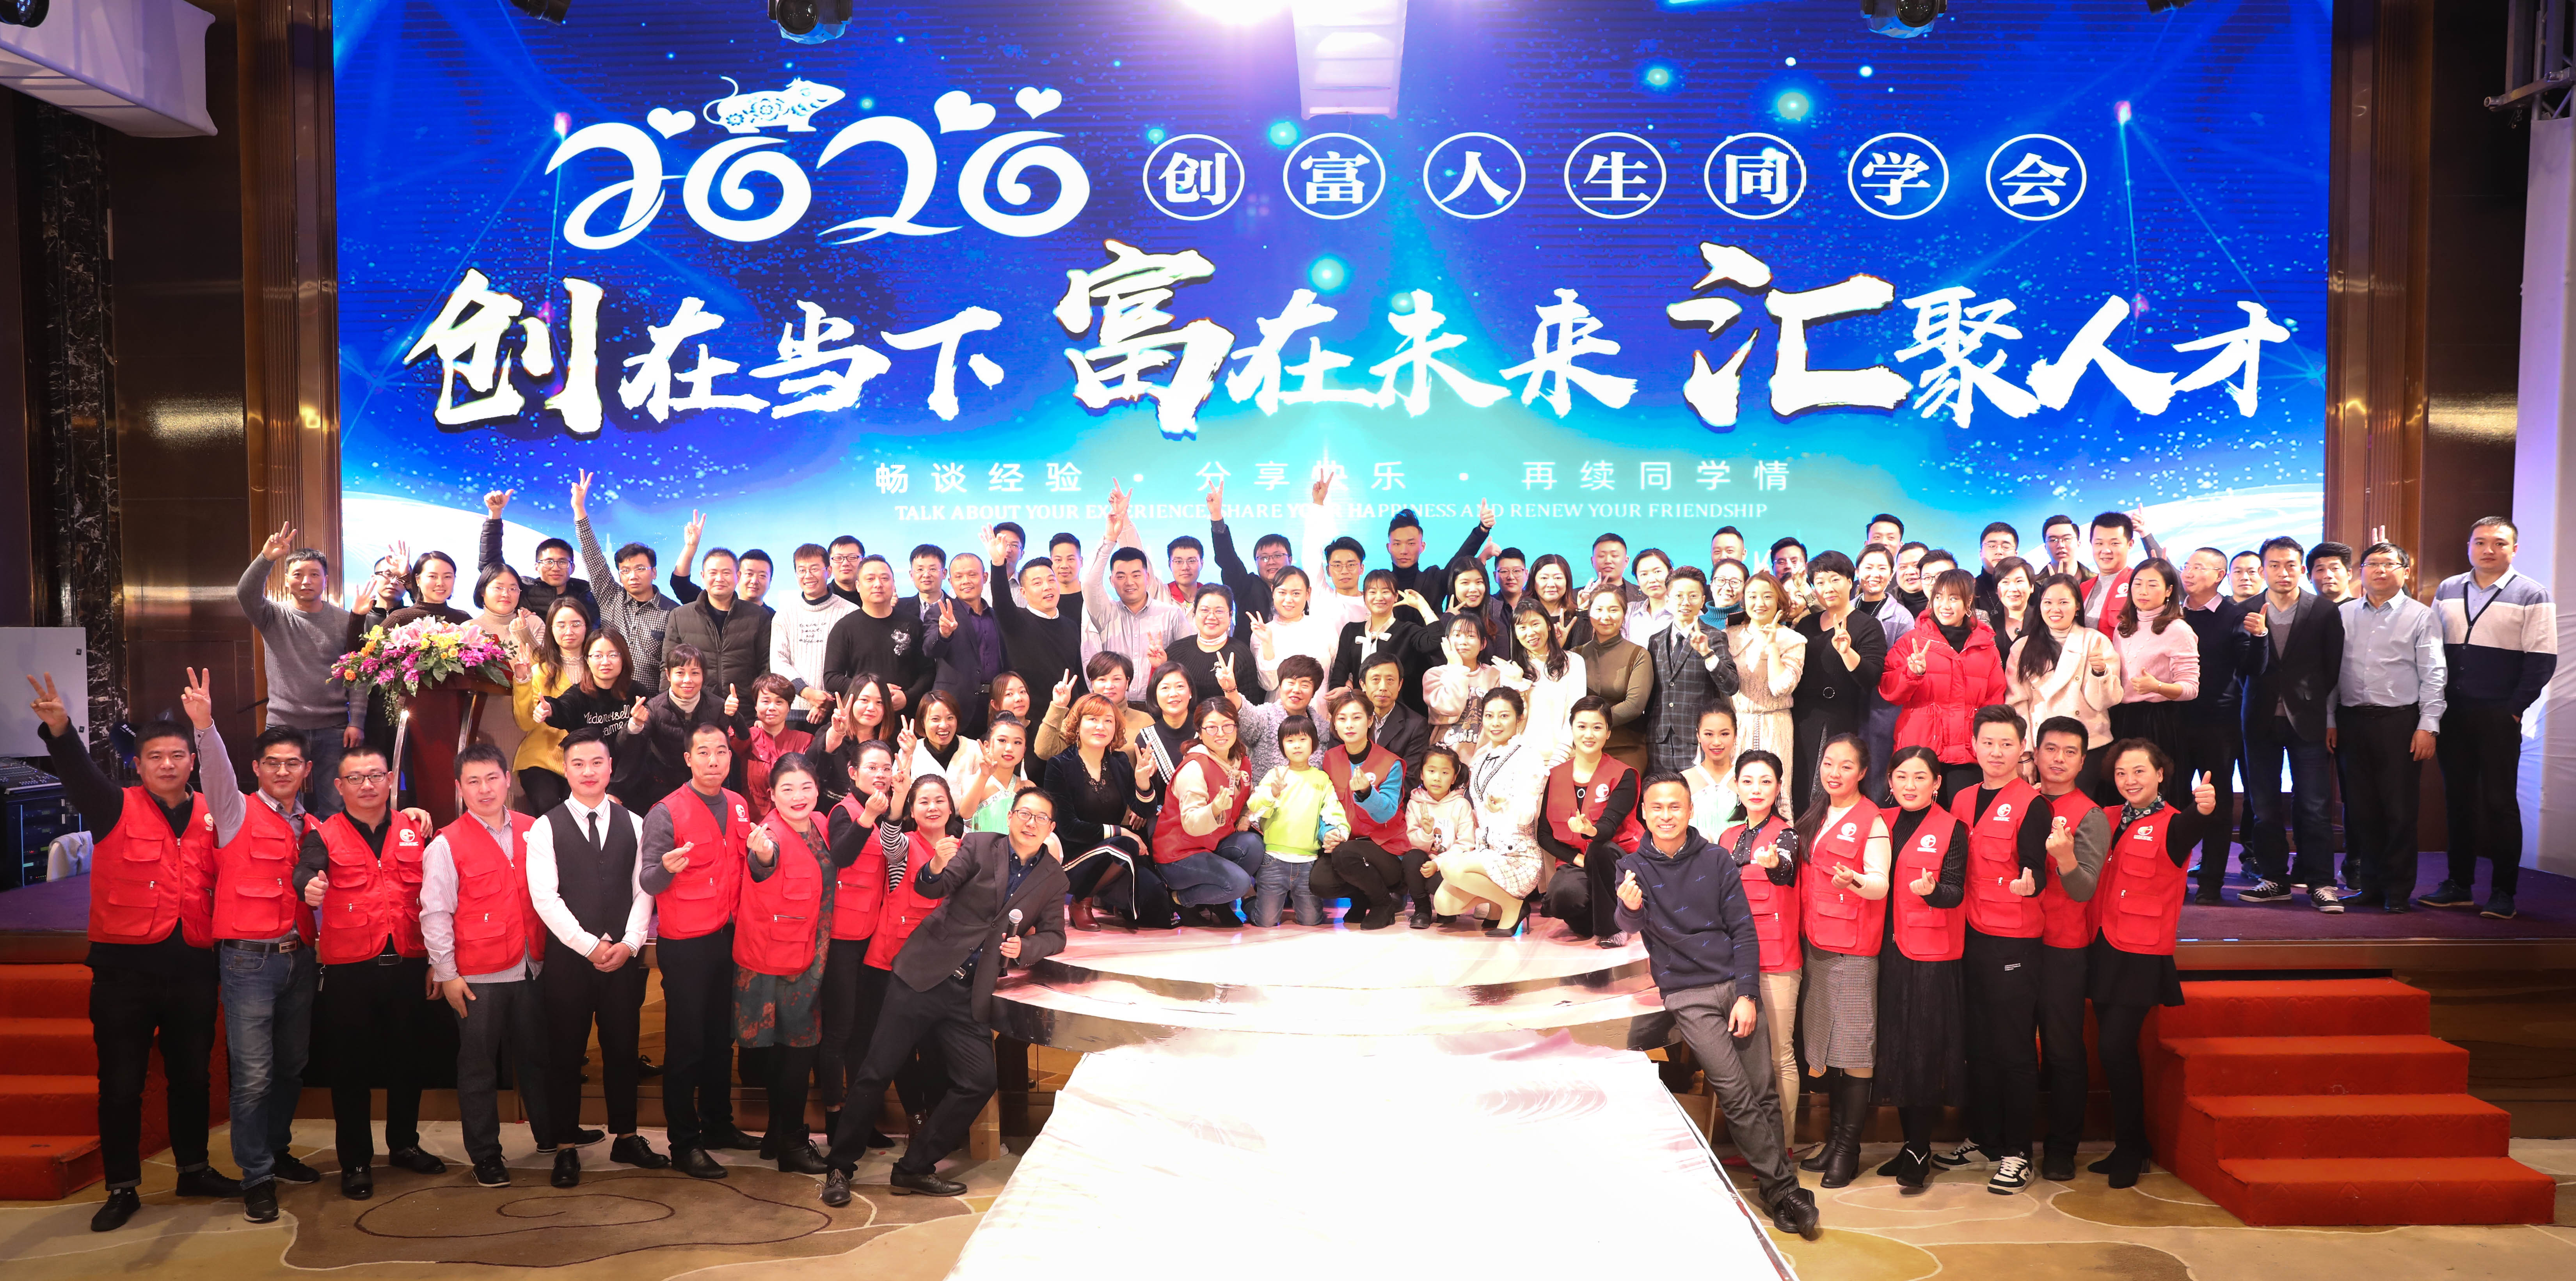 Chinese Jiangyin enterprises learn from each other and make progress together